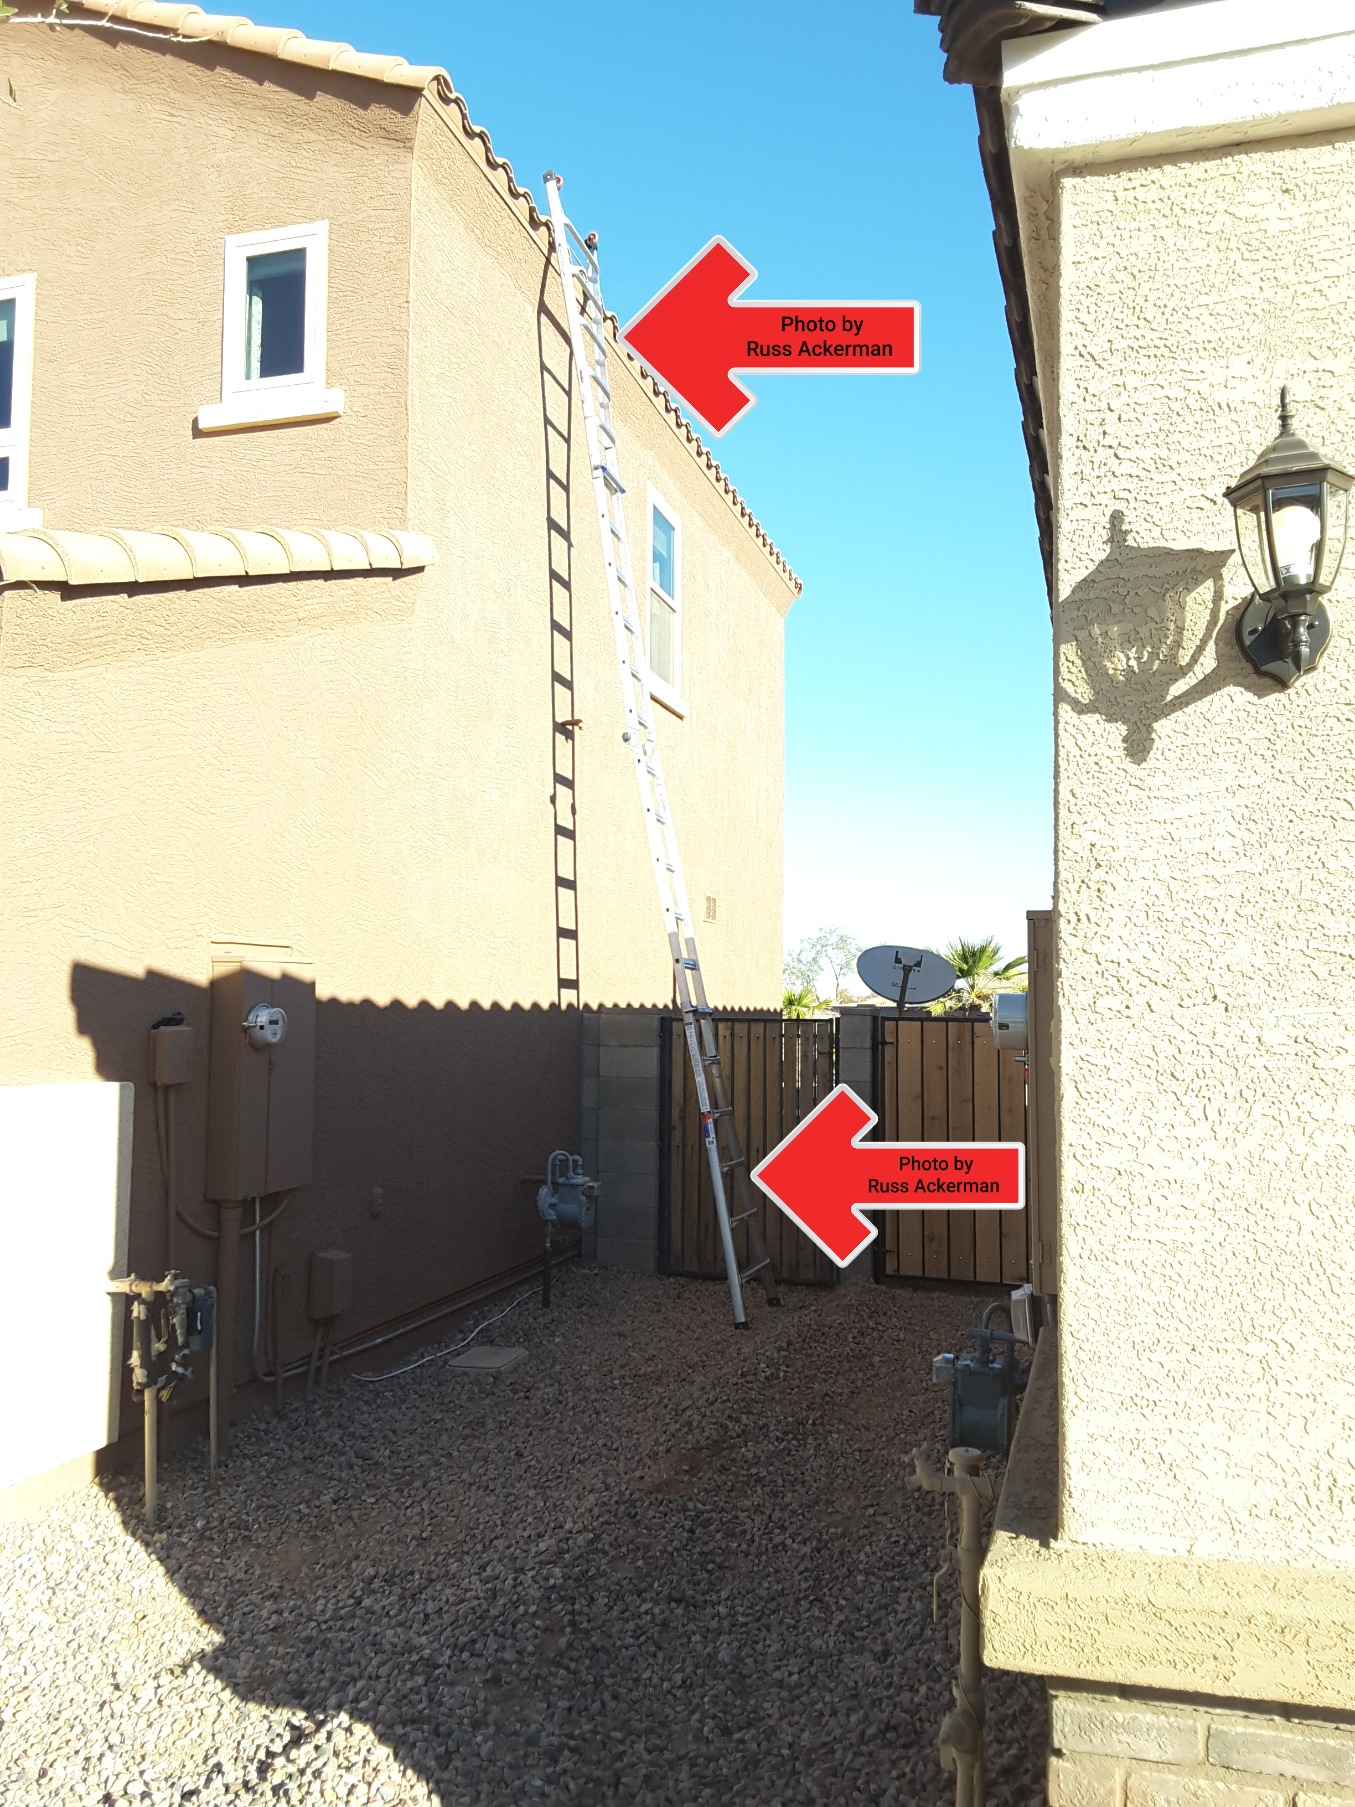 Does your home inspector go above and beyond the standards of practice? I didn't have to get my 26' ladder out, but I did.